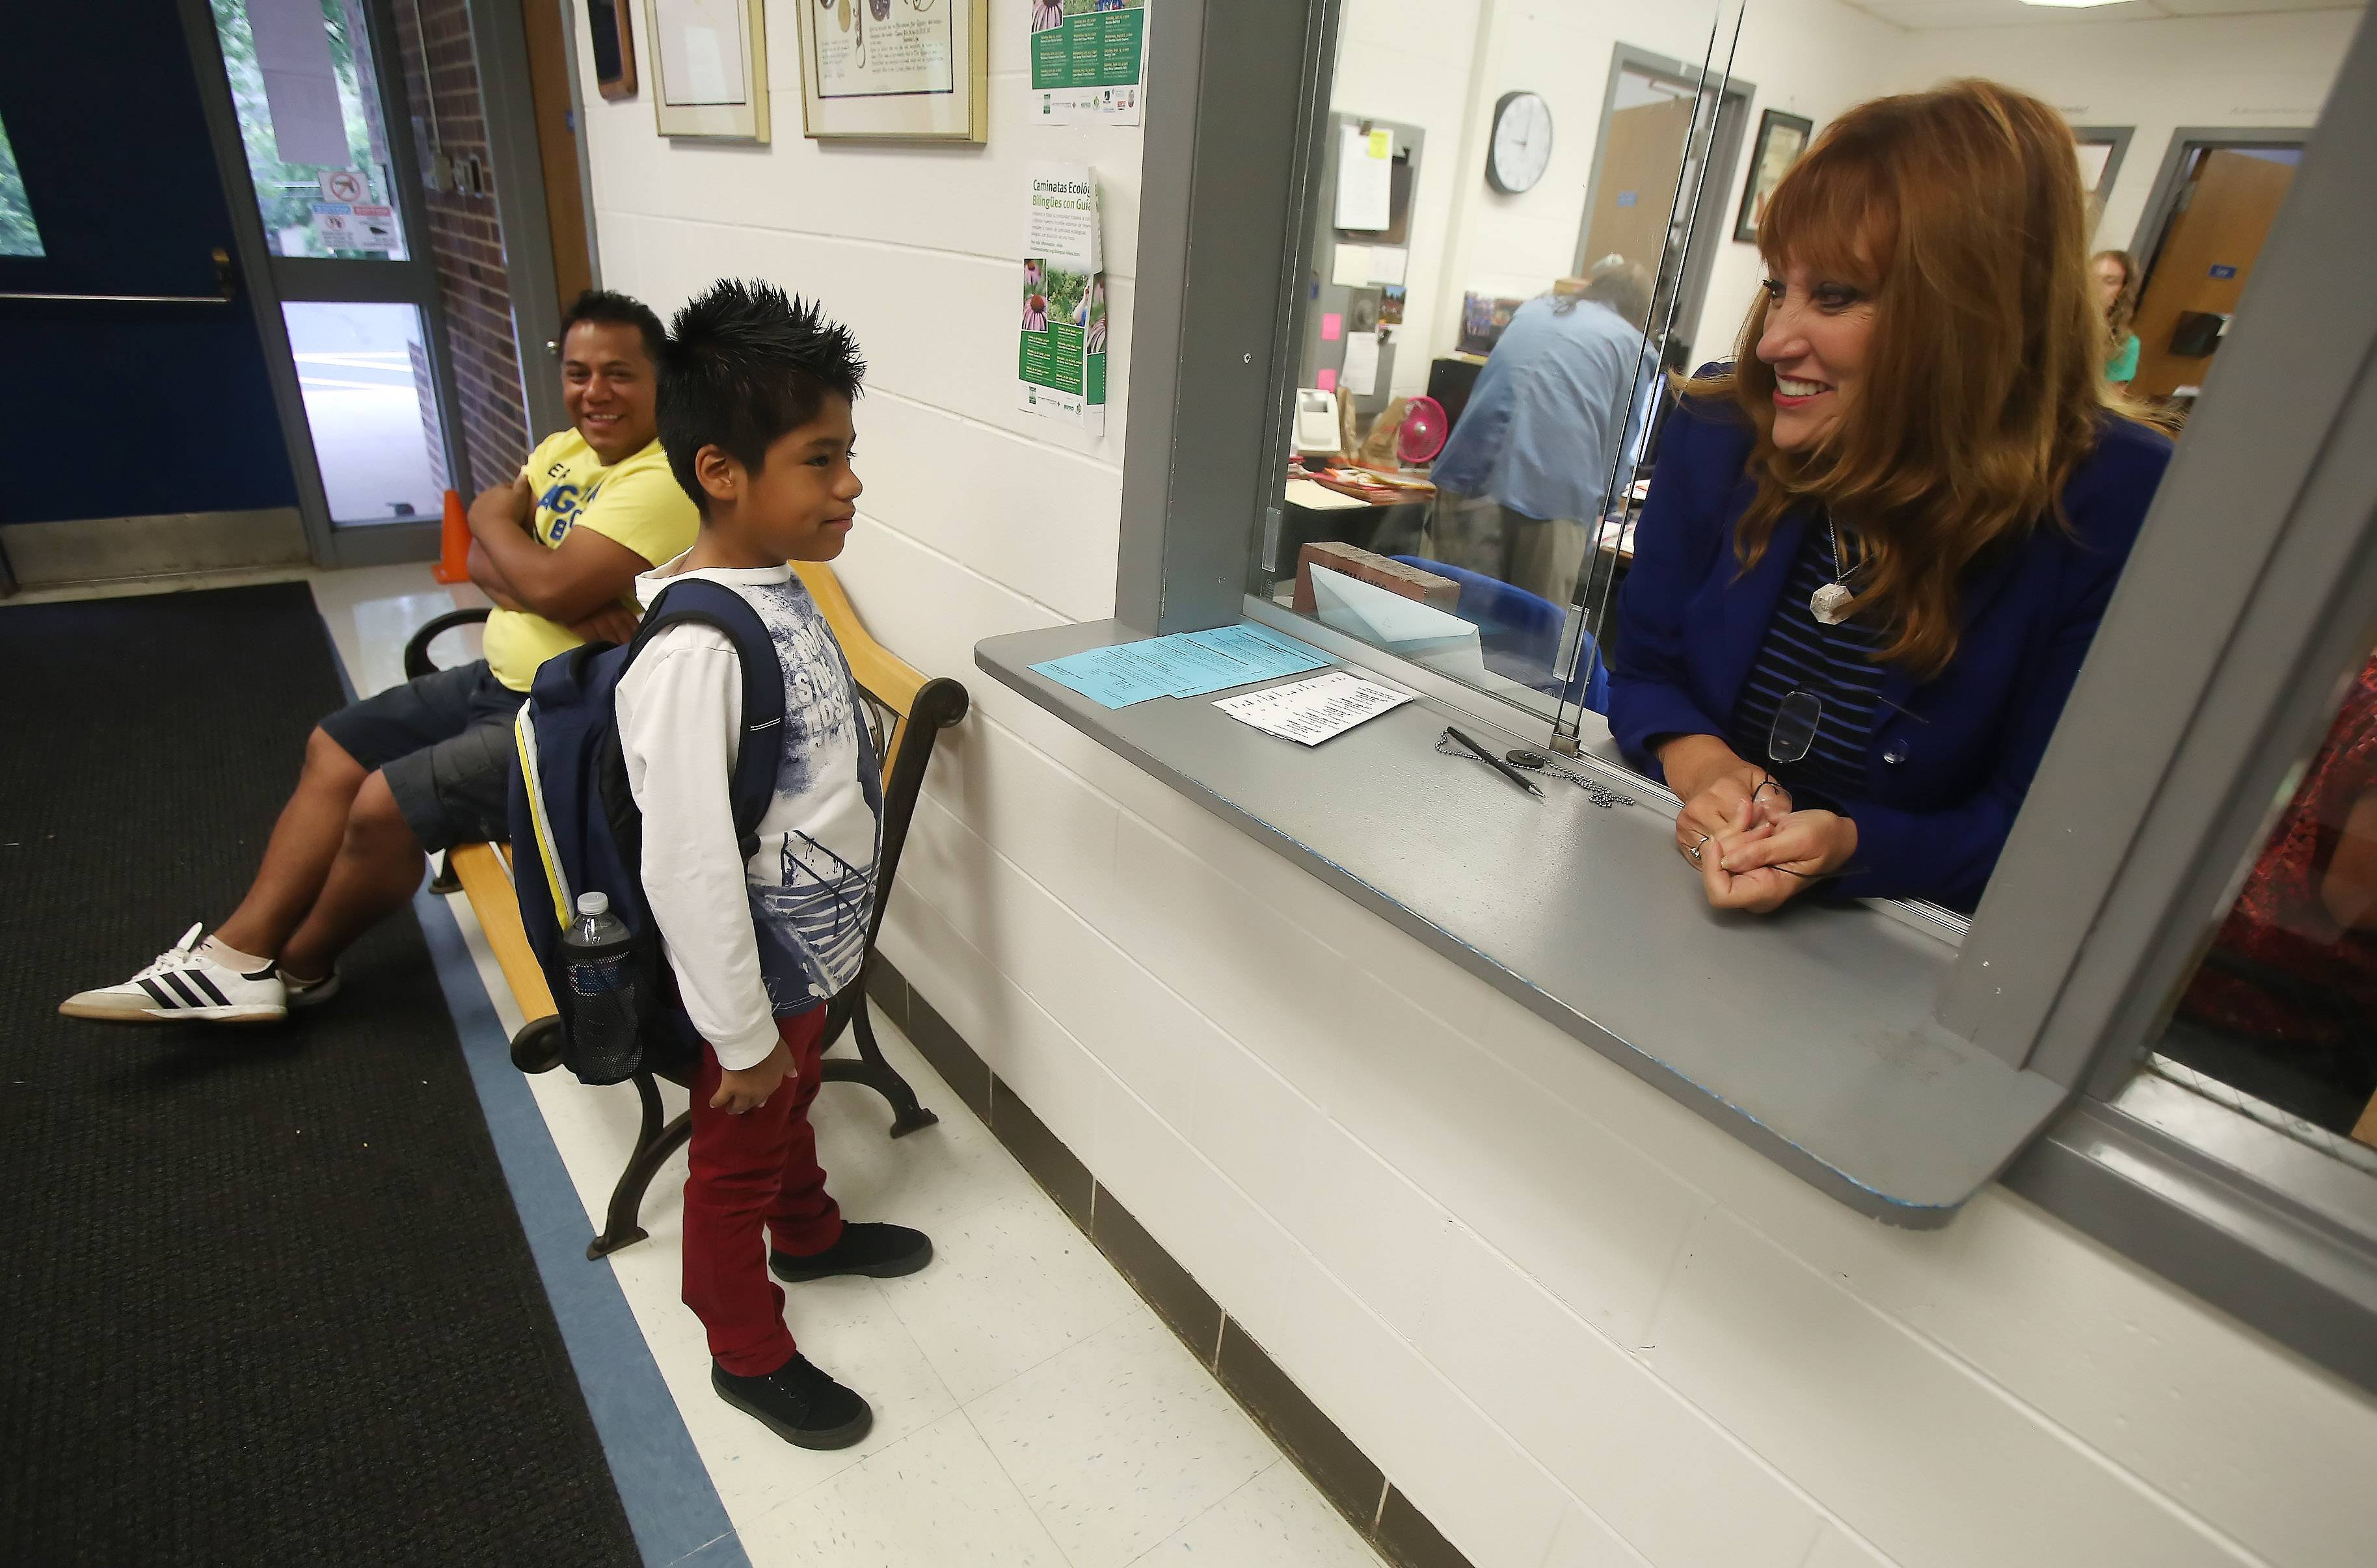 Mechanics Grove Elementary School Principal Kathleen Miller talks with fourth-grader Brandon Jimenez, as his father, Antonio, drops him off for the first day of classes in Mundelein on Tuesday. Miller and Mundelein Elementary District 75's new superintendent, Andy Henrickson, greeted students when they arrived.